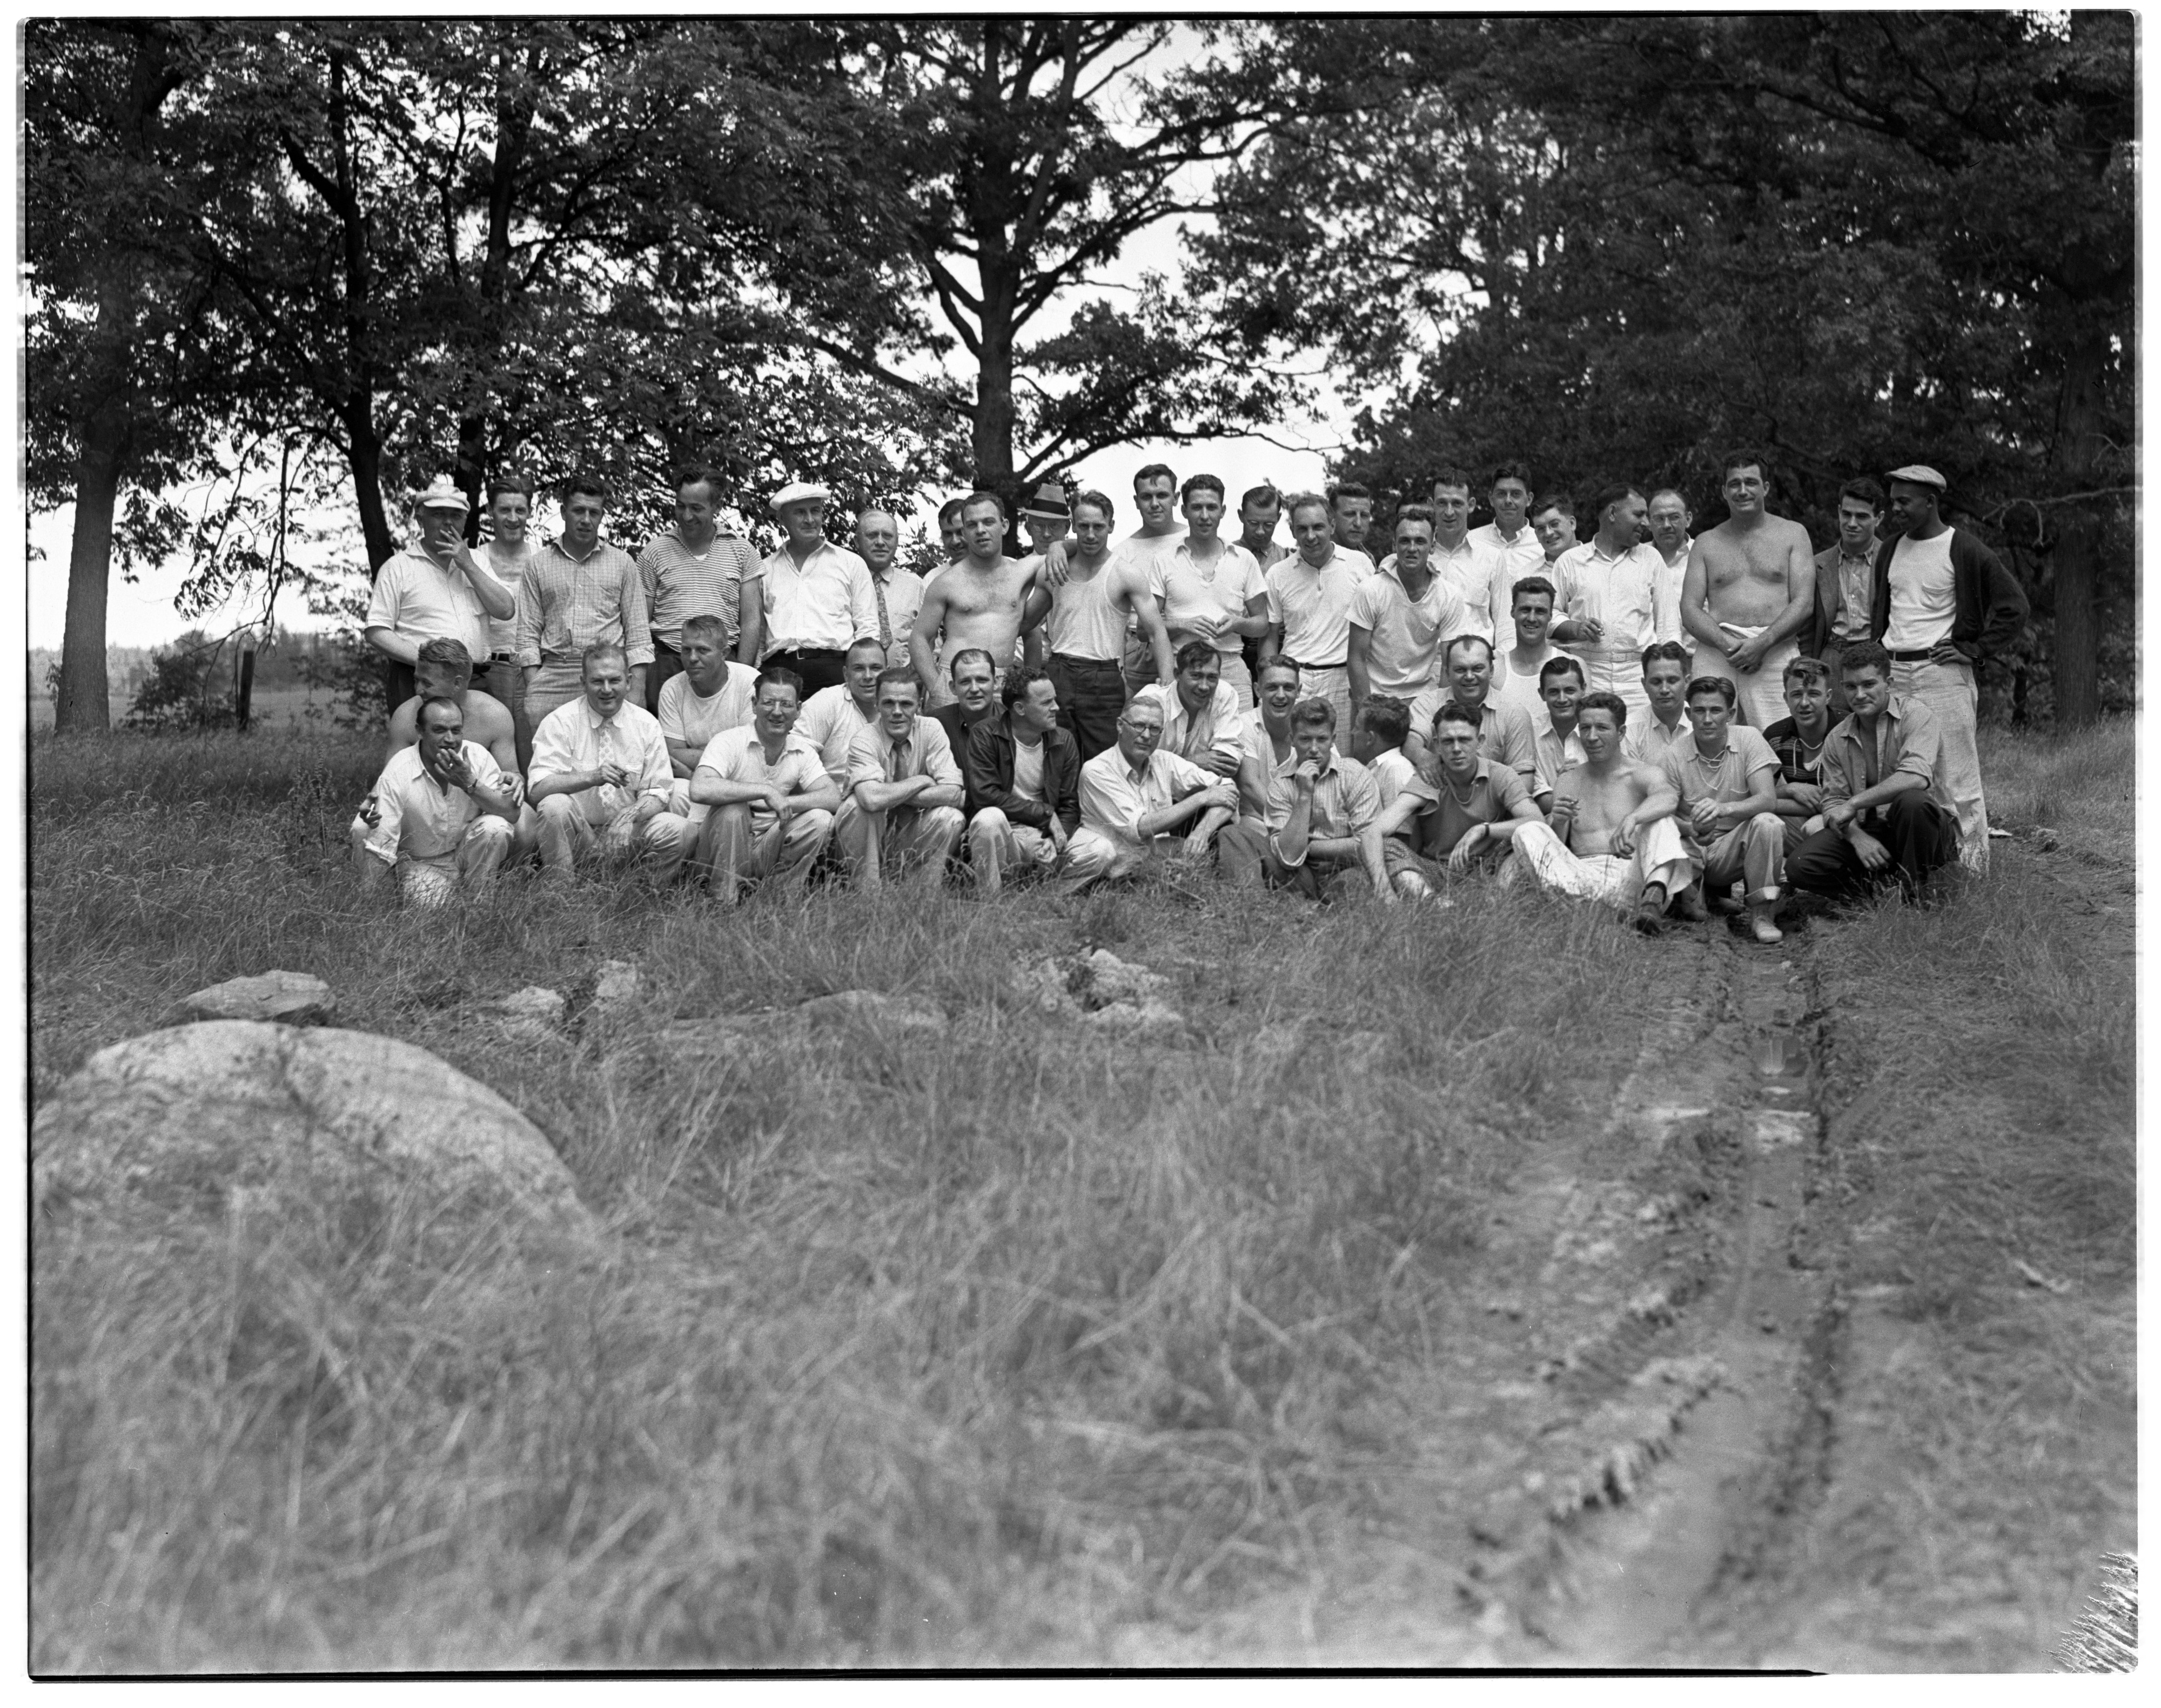 AA Club Picnic, June 1937 image